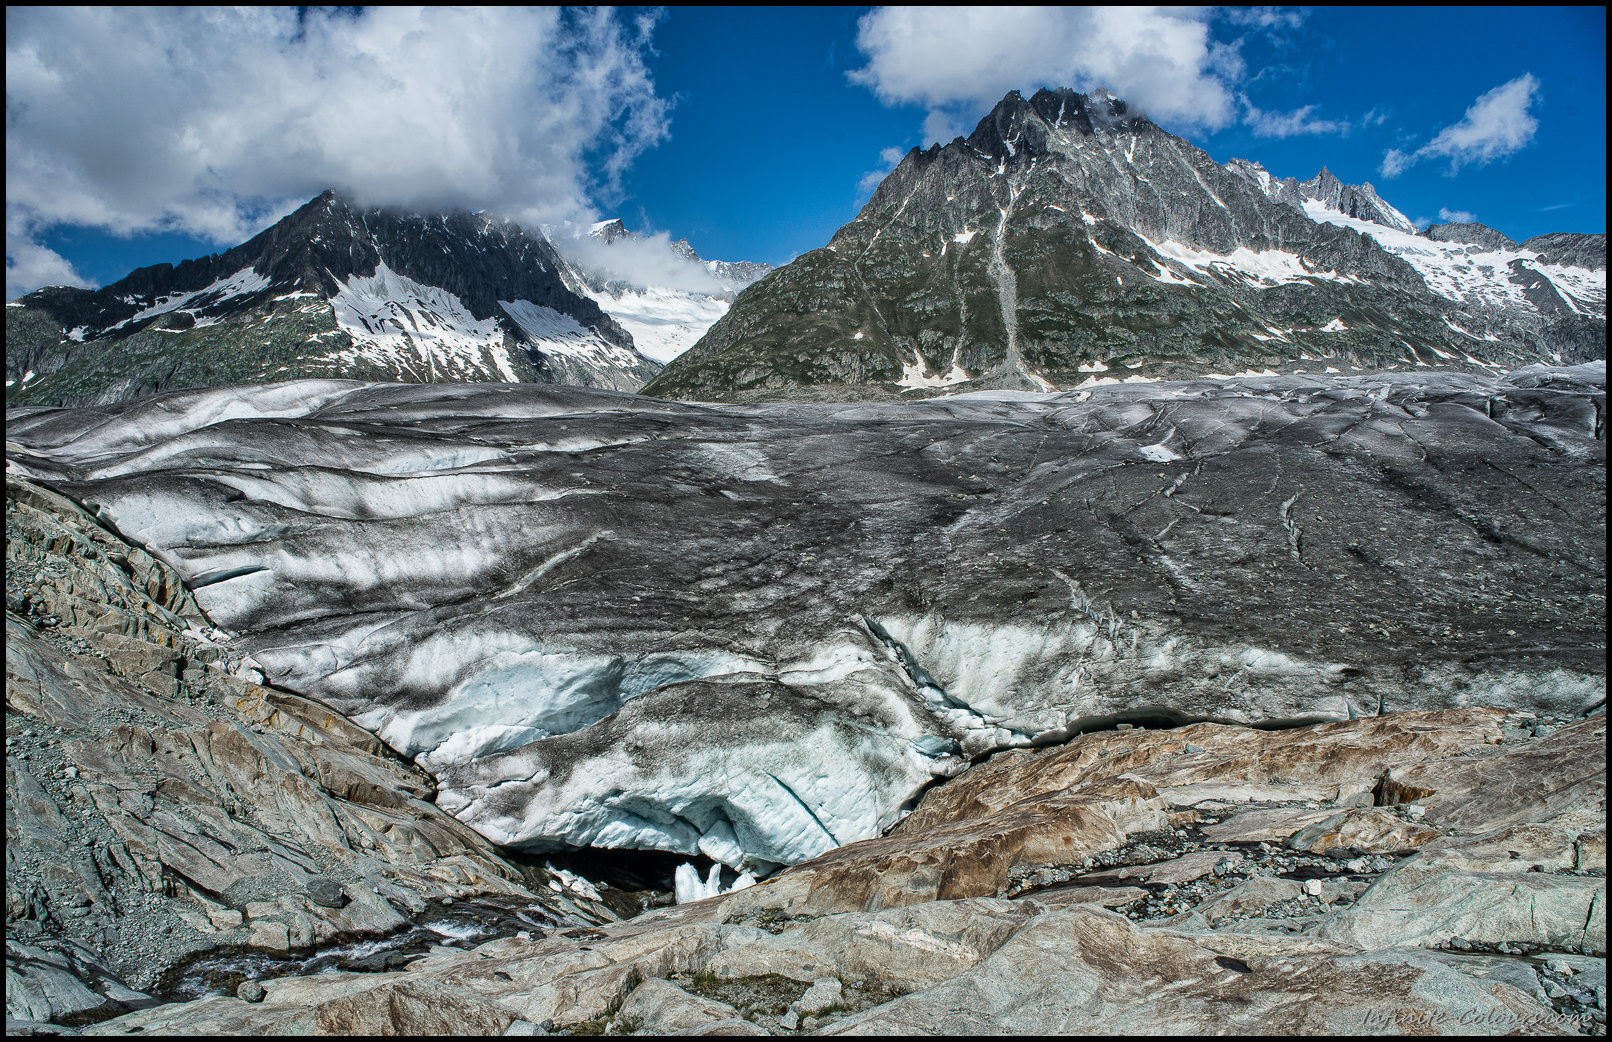 The outlow of the Märjelensee vanishes in the massive glacier